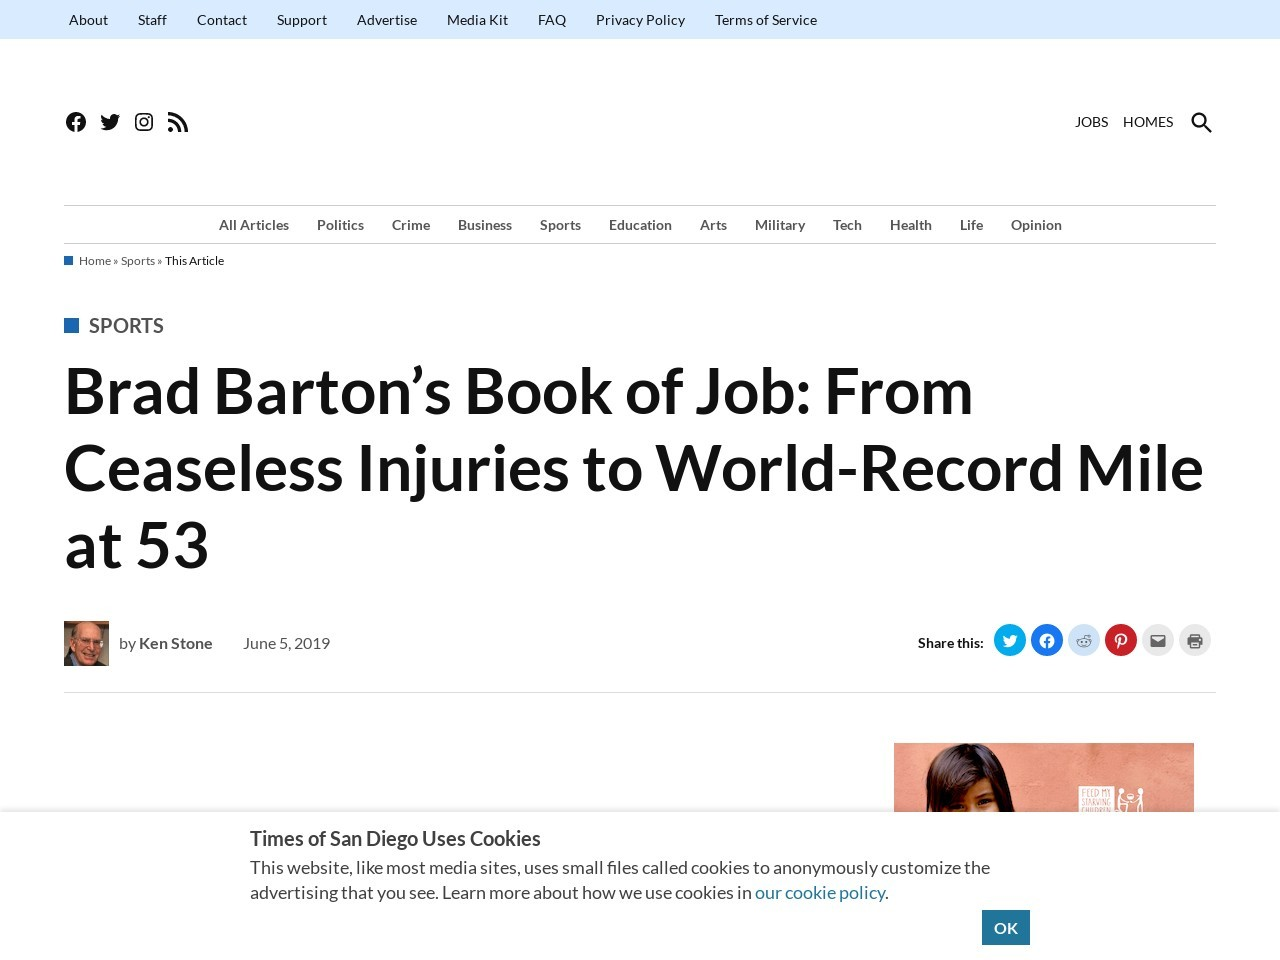 Brad Barton's Book of Job: From Ceaseless Injuries to World-Record…